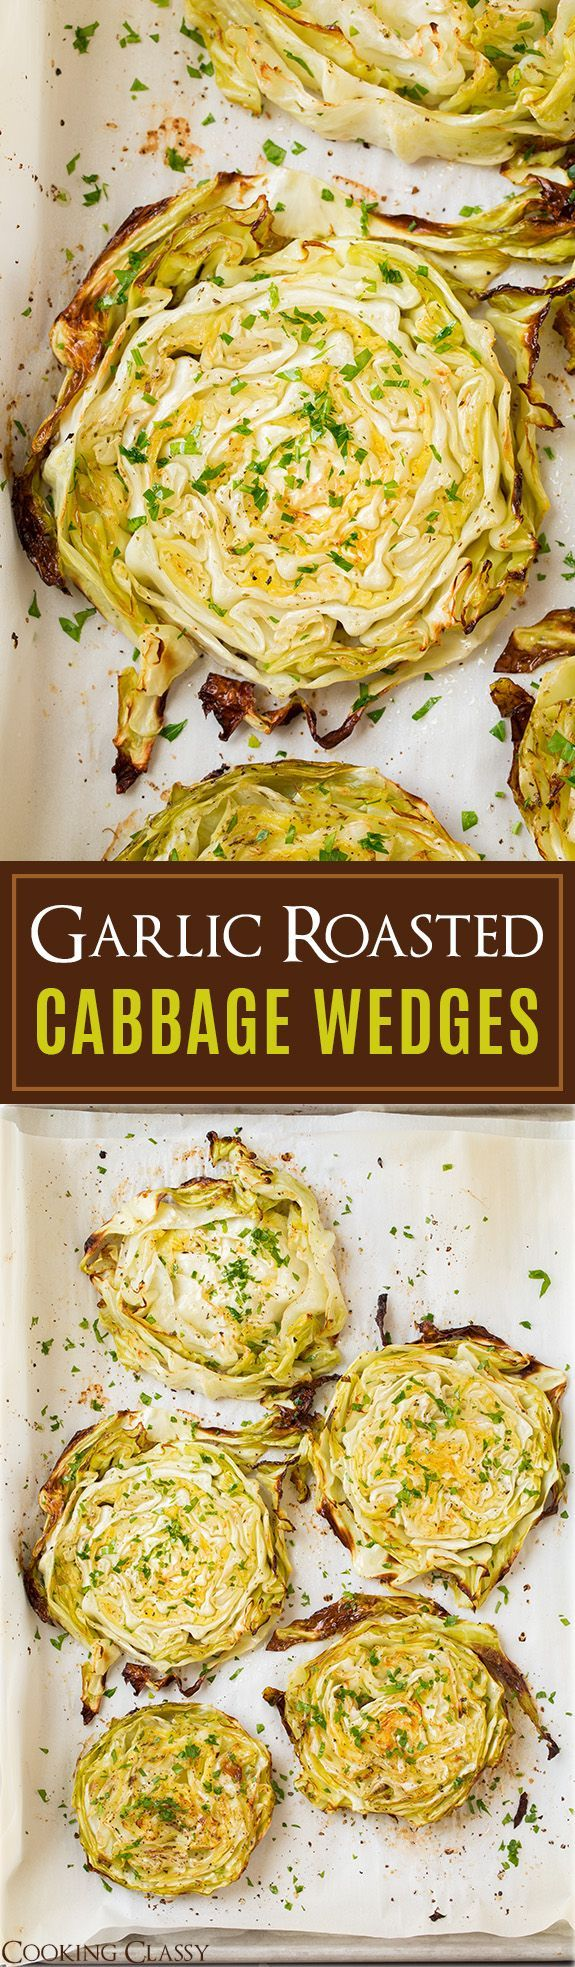 Garlic Roasted Cabbage Wedges - So easy and delicious!